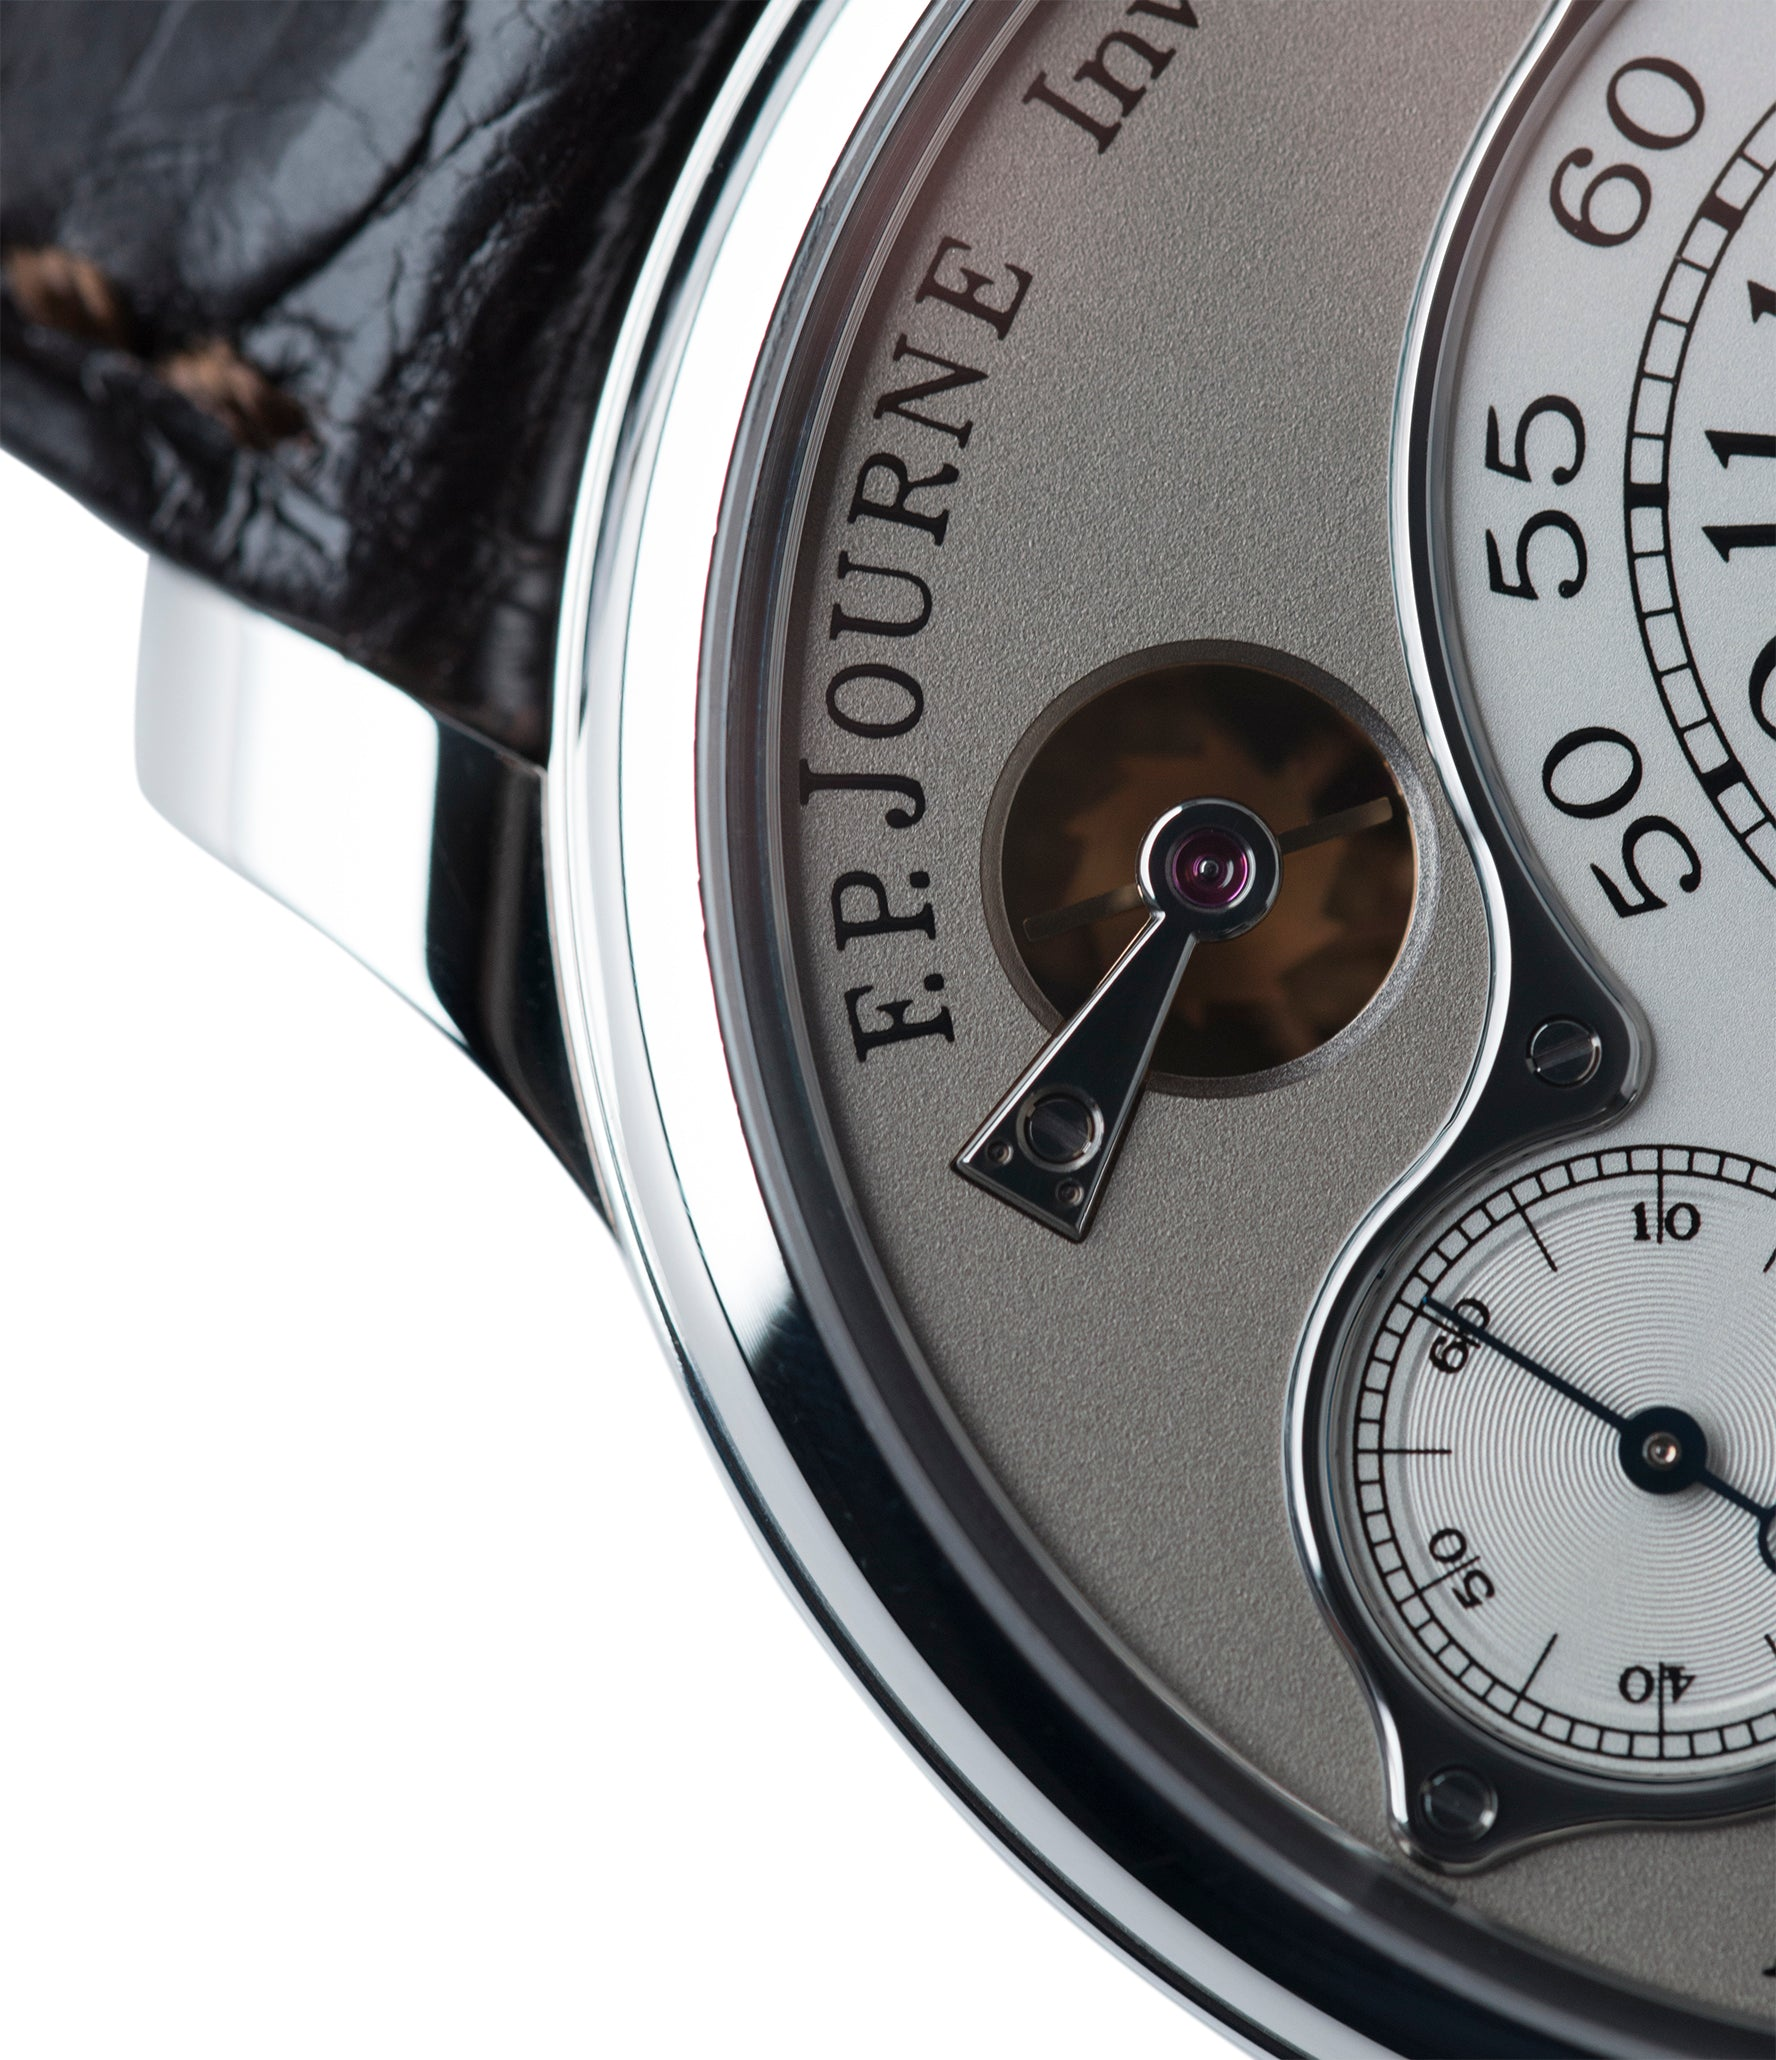 one-second rementoir d'egalité system F. P. Journe Chronometre Optimum platinum rare watch for sale online at A Collected Man London approved retailer of independent watchmakers